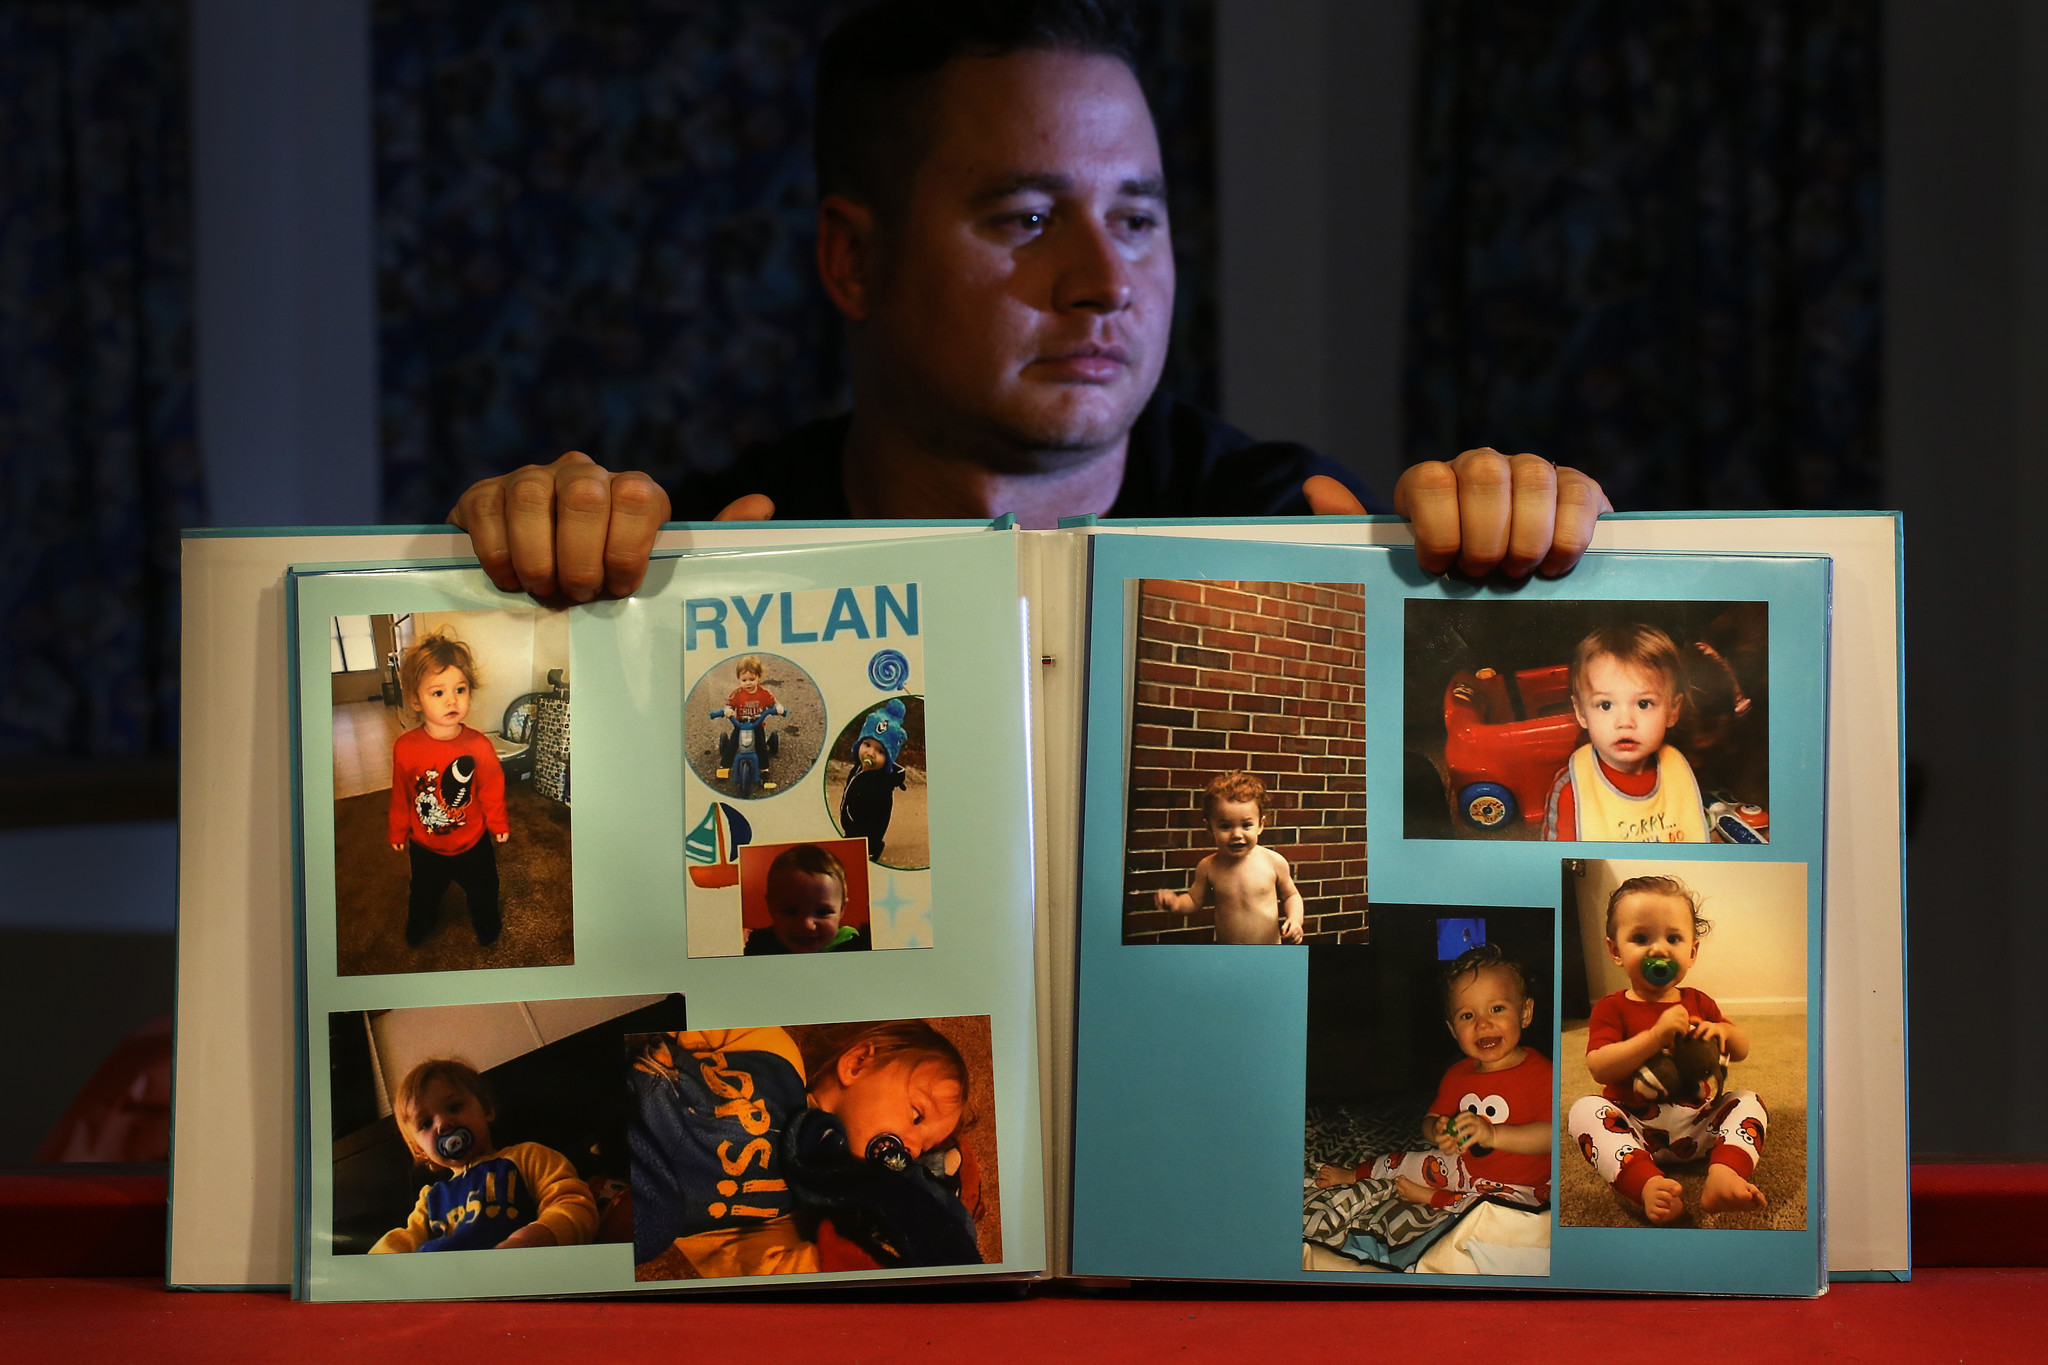 Corey Ott displays a book of photographs of his son, Rylan Ott, who apparently drowned in a North Carolina pond while under the care of his mother, Samantha Bryant.